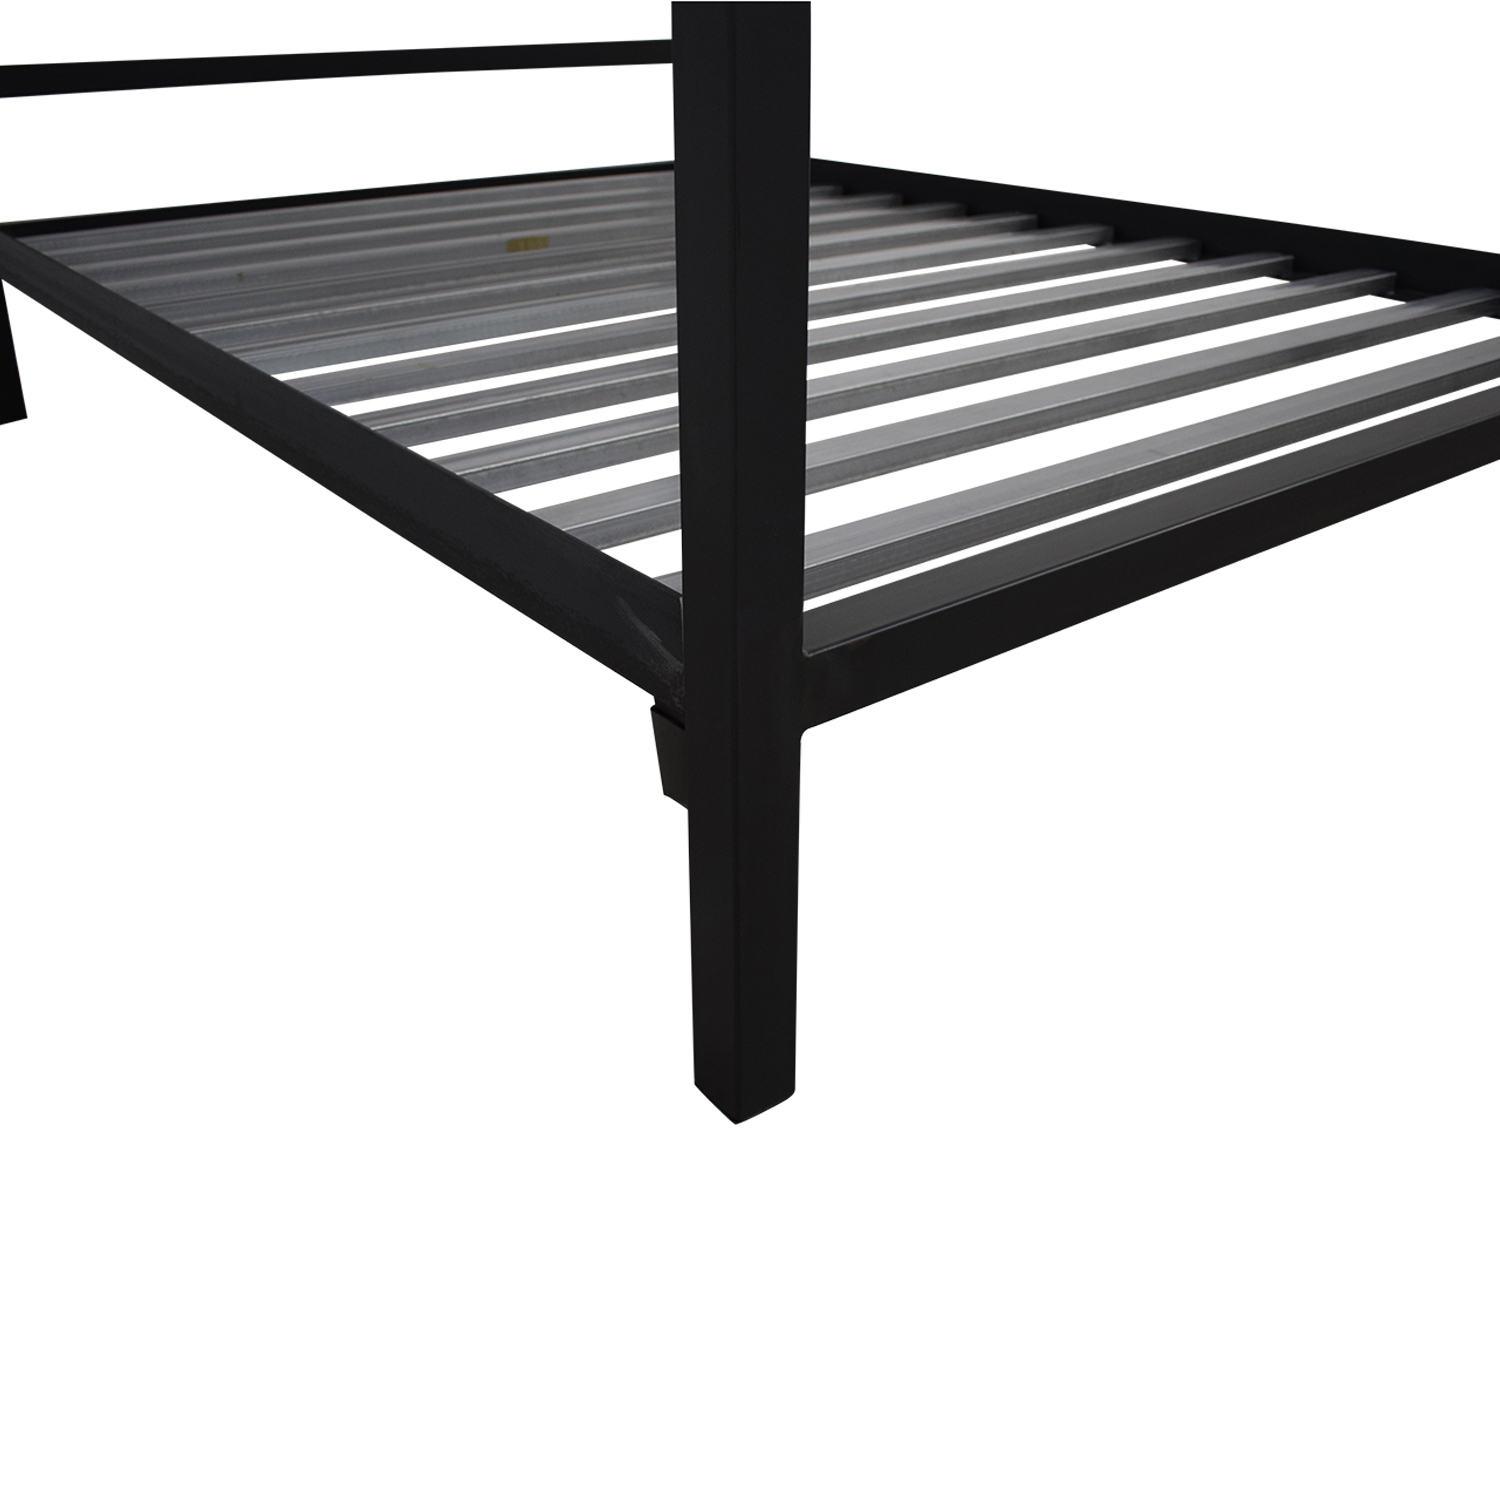 Room & Board Room & Board Architecture Queen Standard Bed in Natural Steel Bed Frames